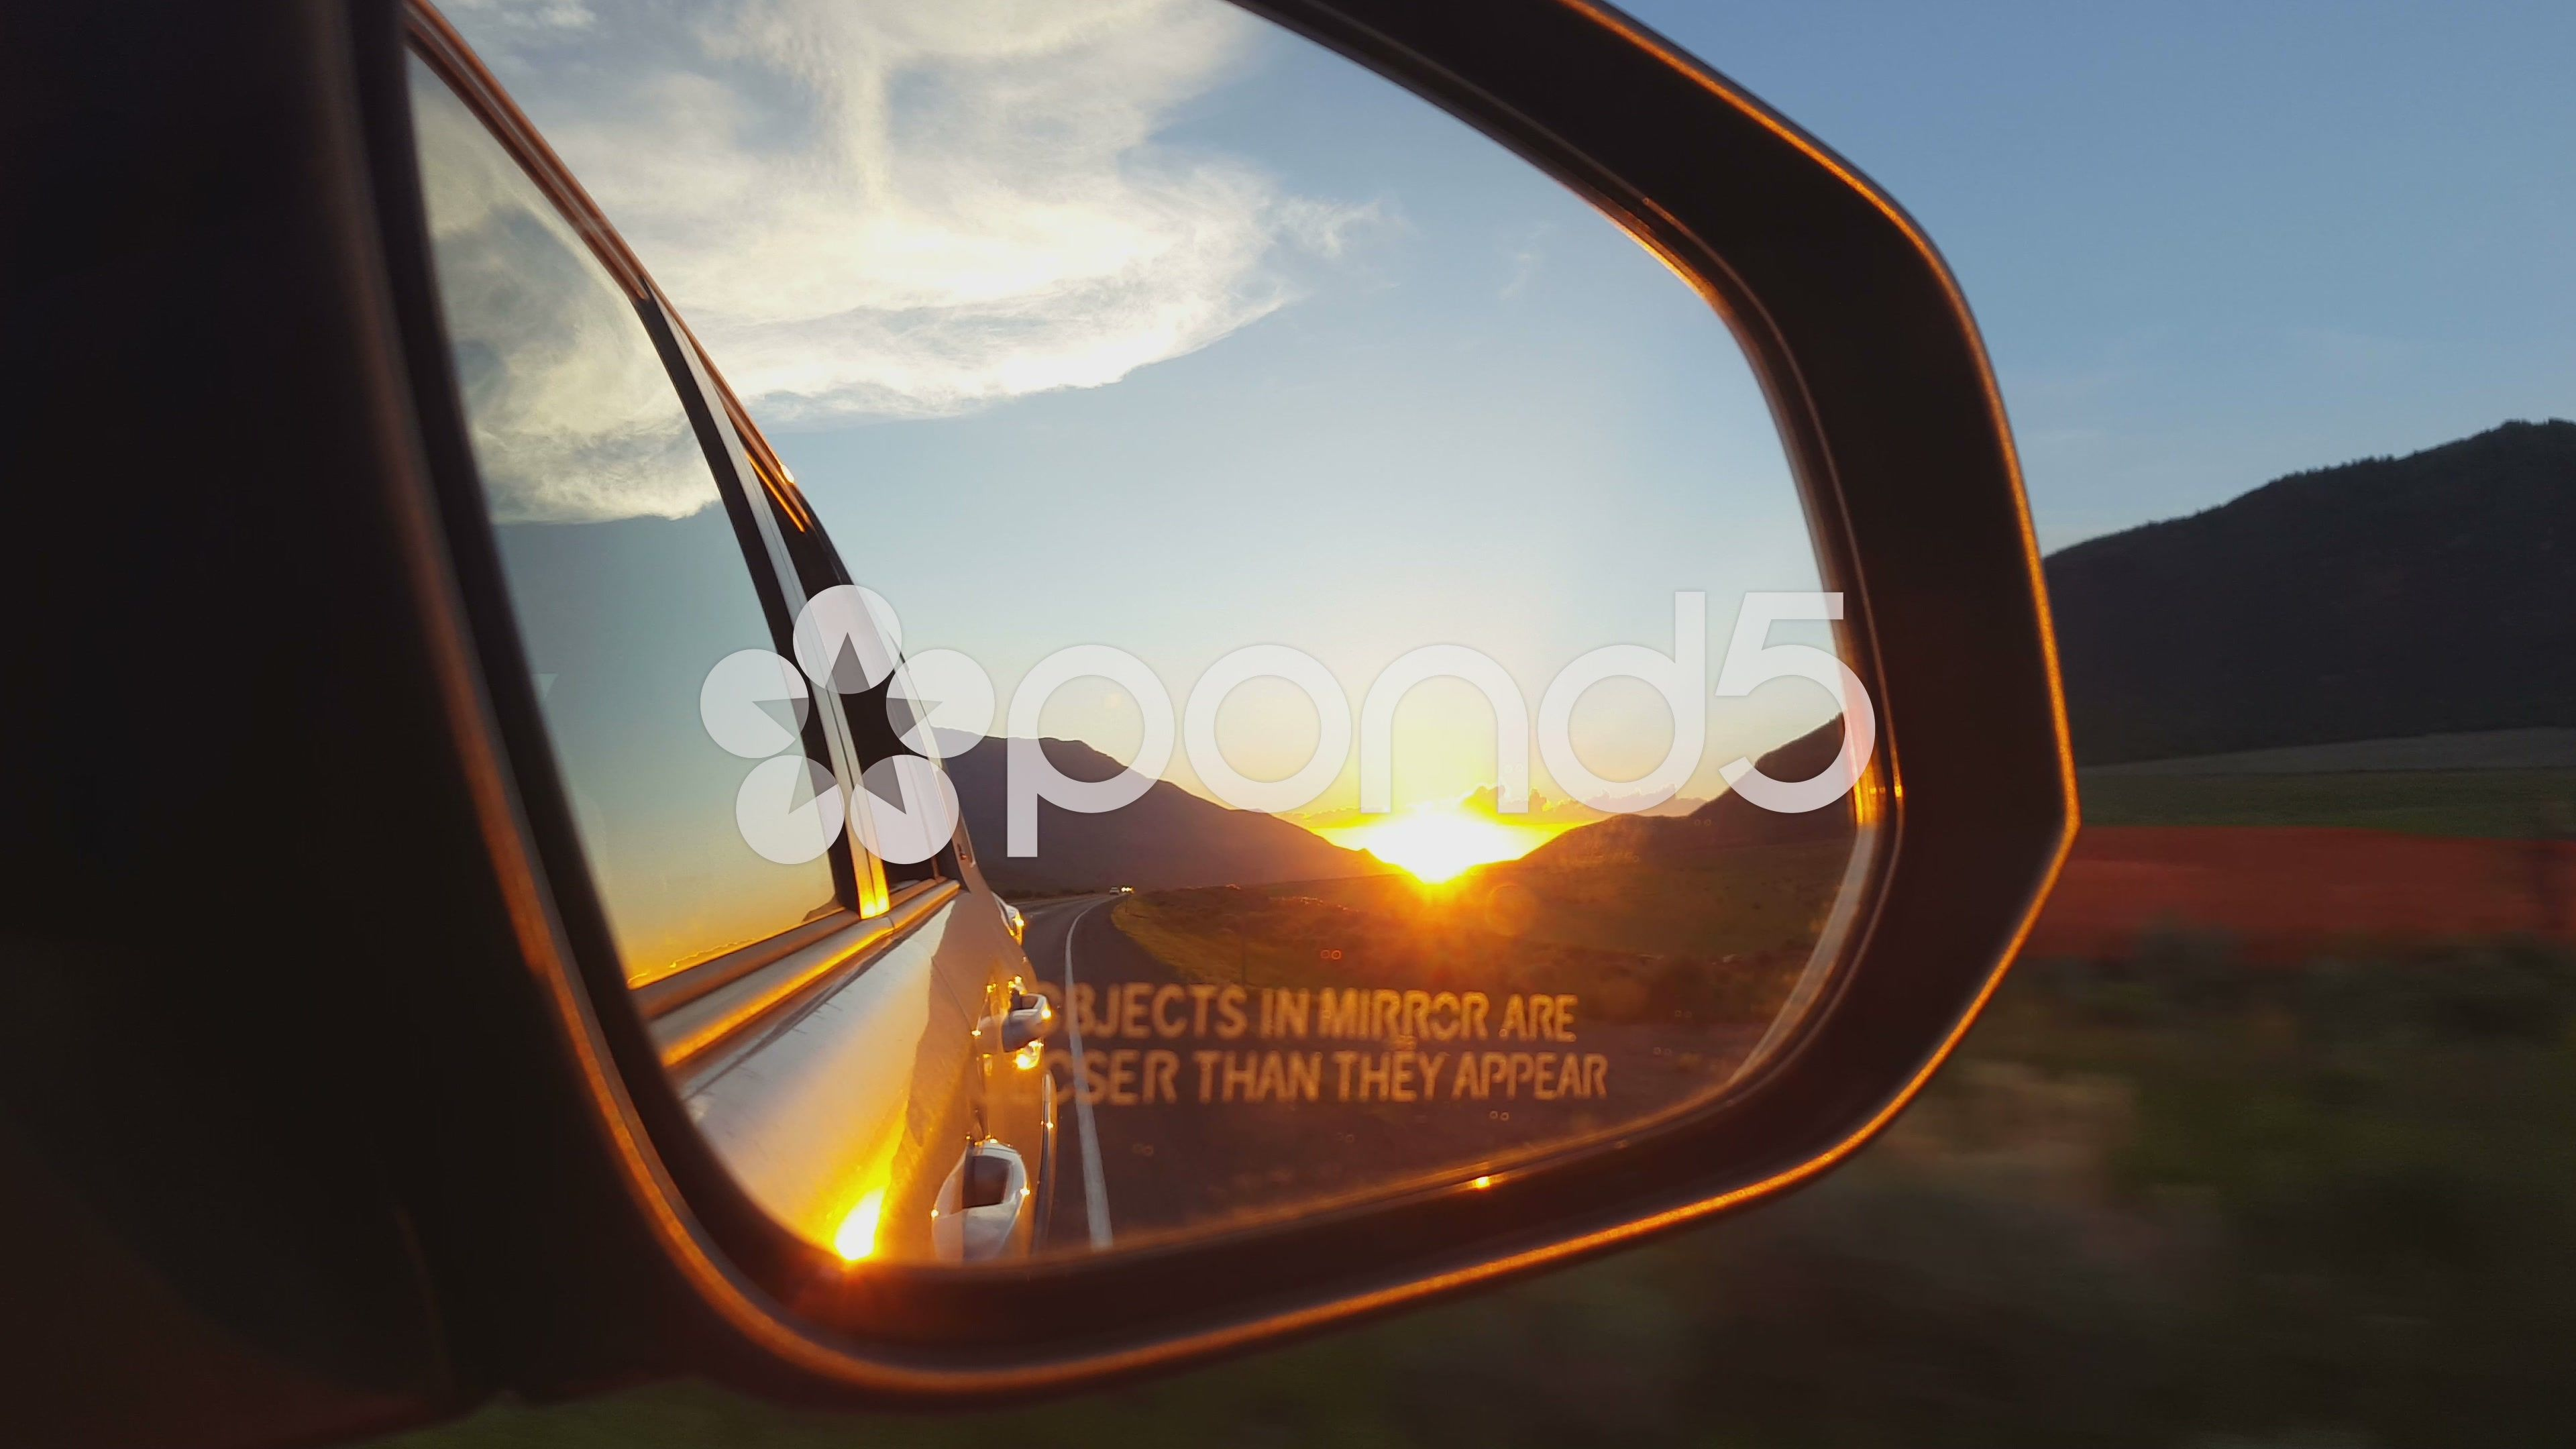 POV - Briliant sunset in mountain pass in auto rearview